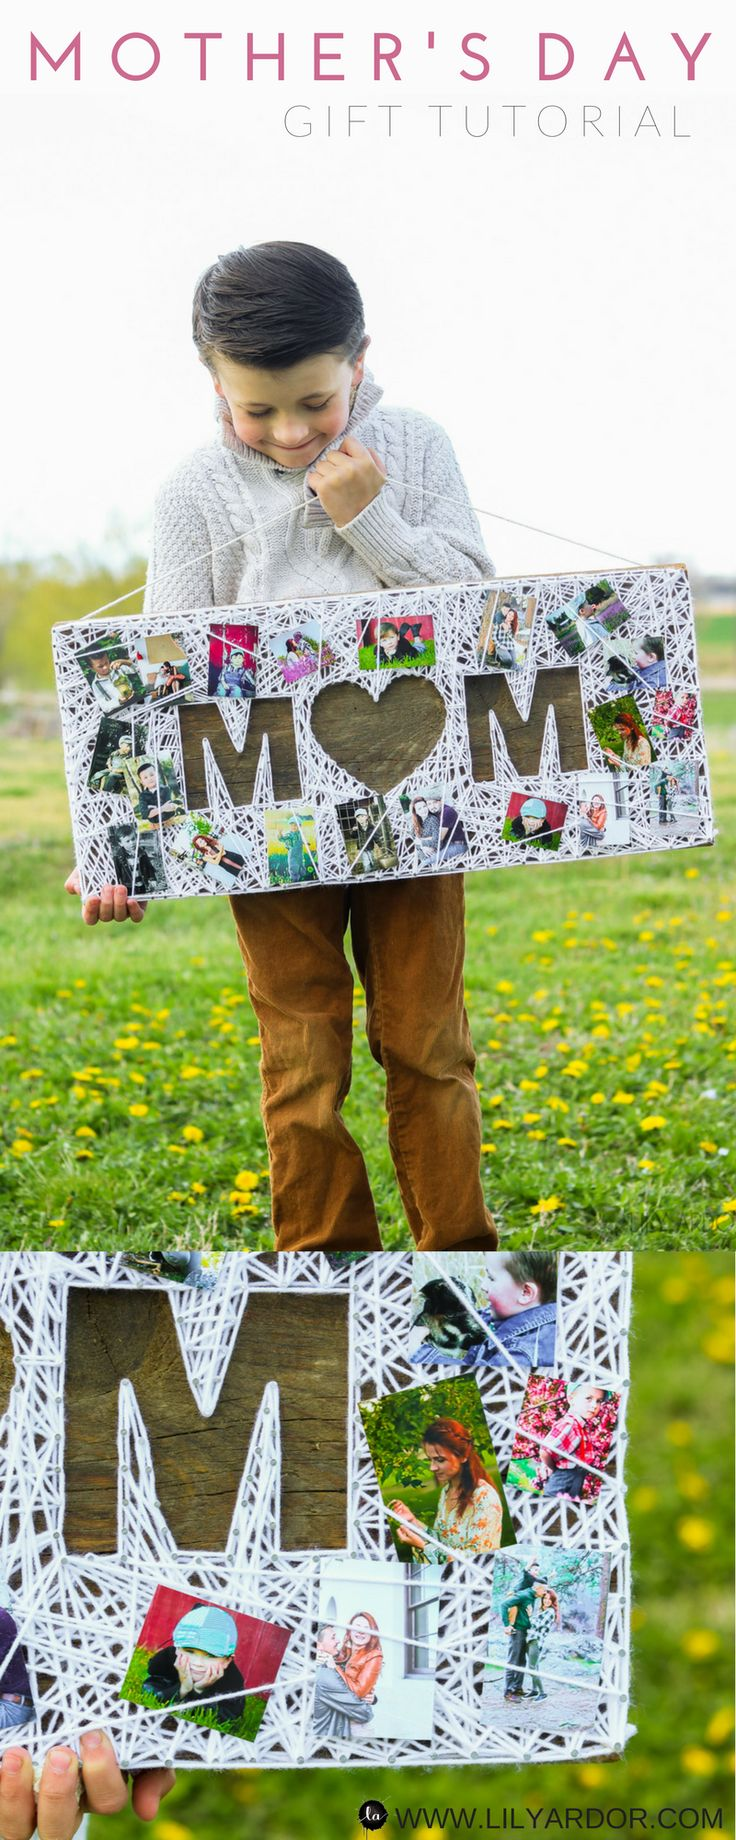 This Mother's day gift is the perfect gift for any mom!! PLUS it'll look beautiful on her wall. A picture is worth a thousand words but a gift like this will last forever! #Mothersday #gift #homemadegift #momsgift #giftidea